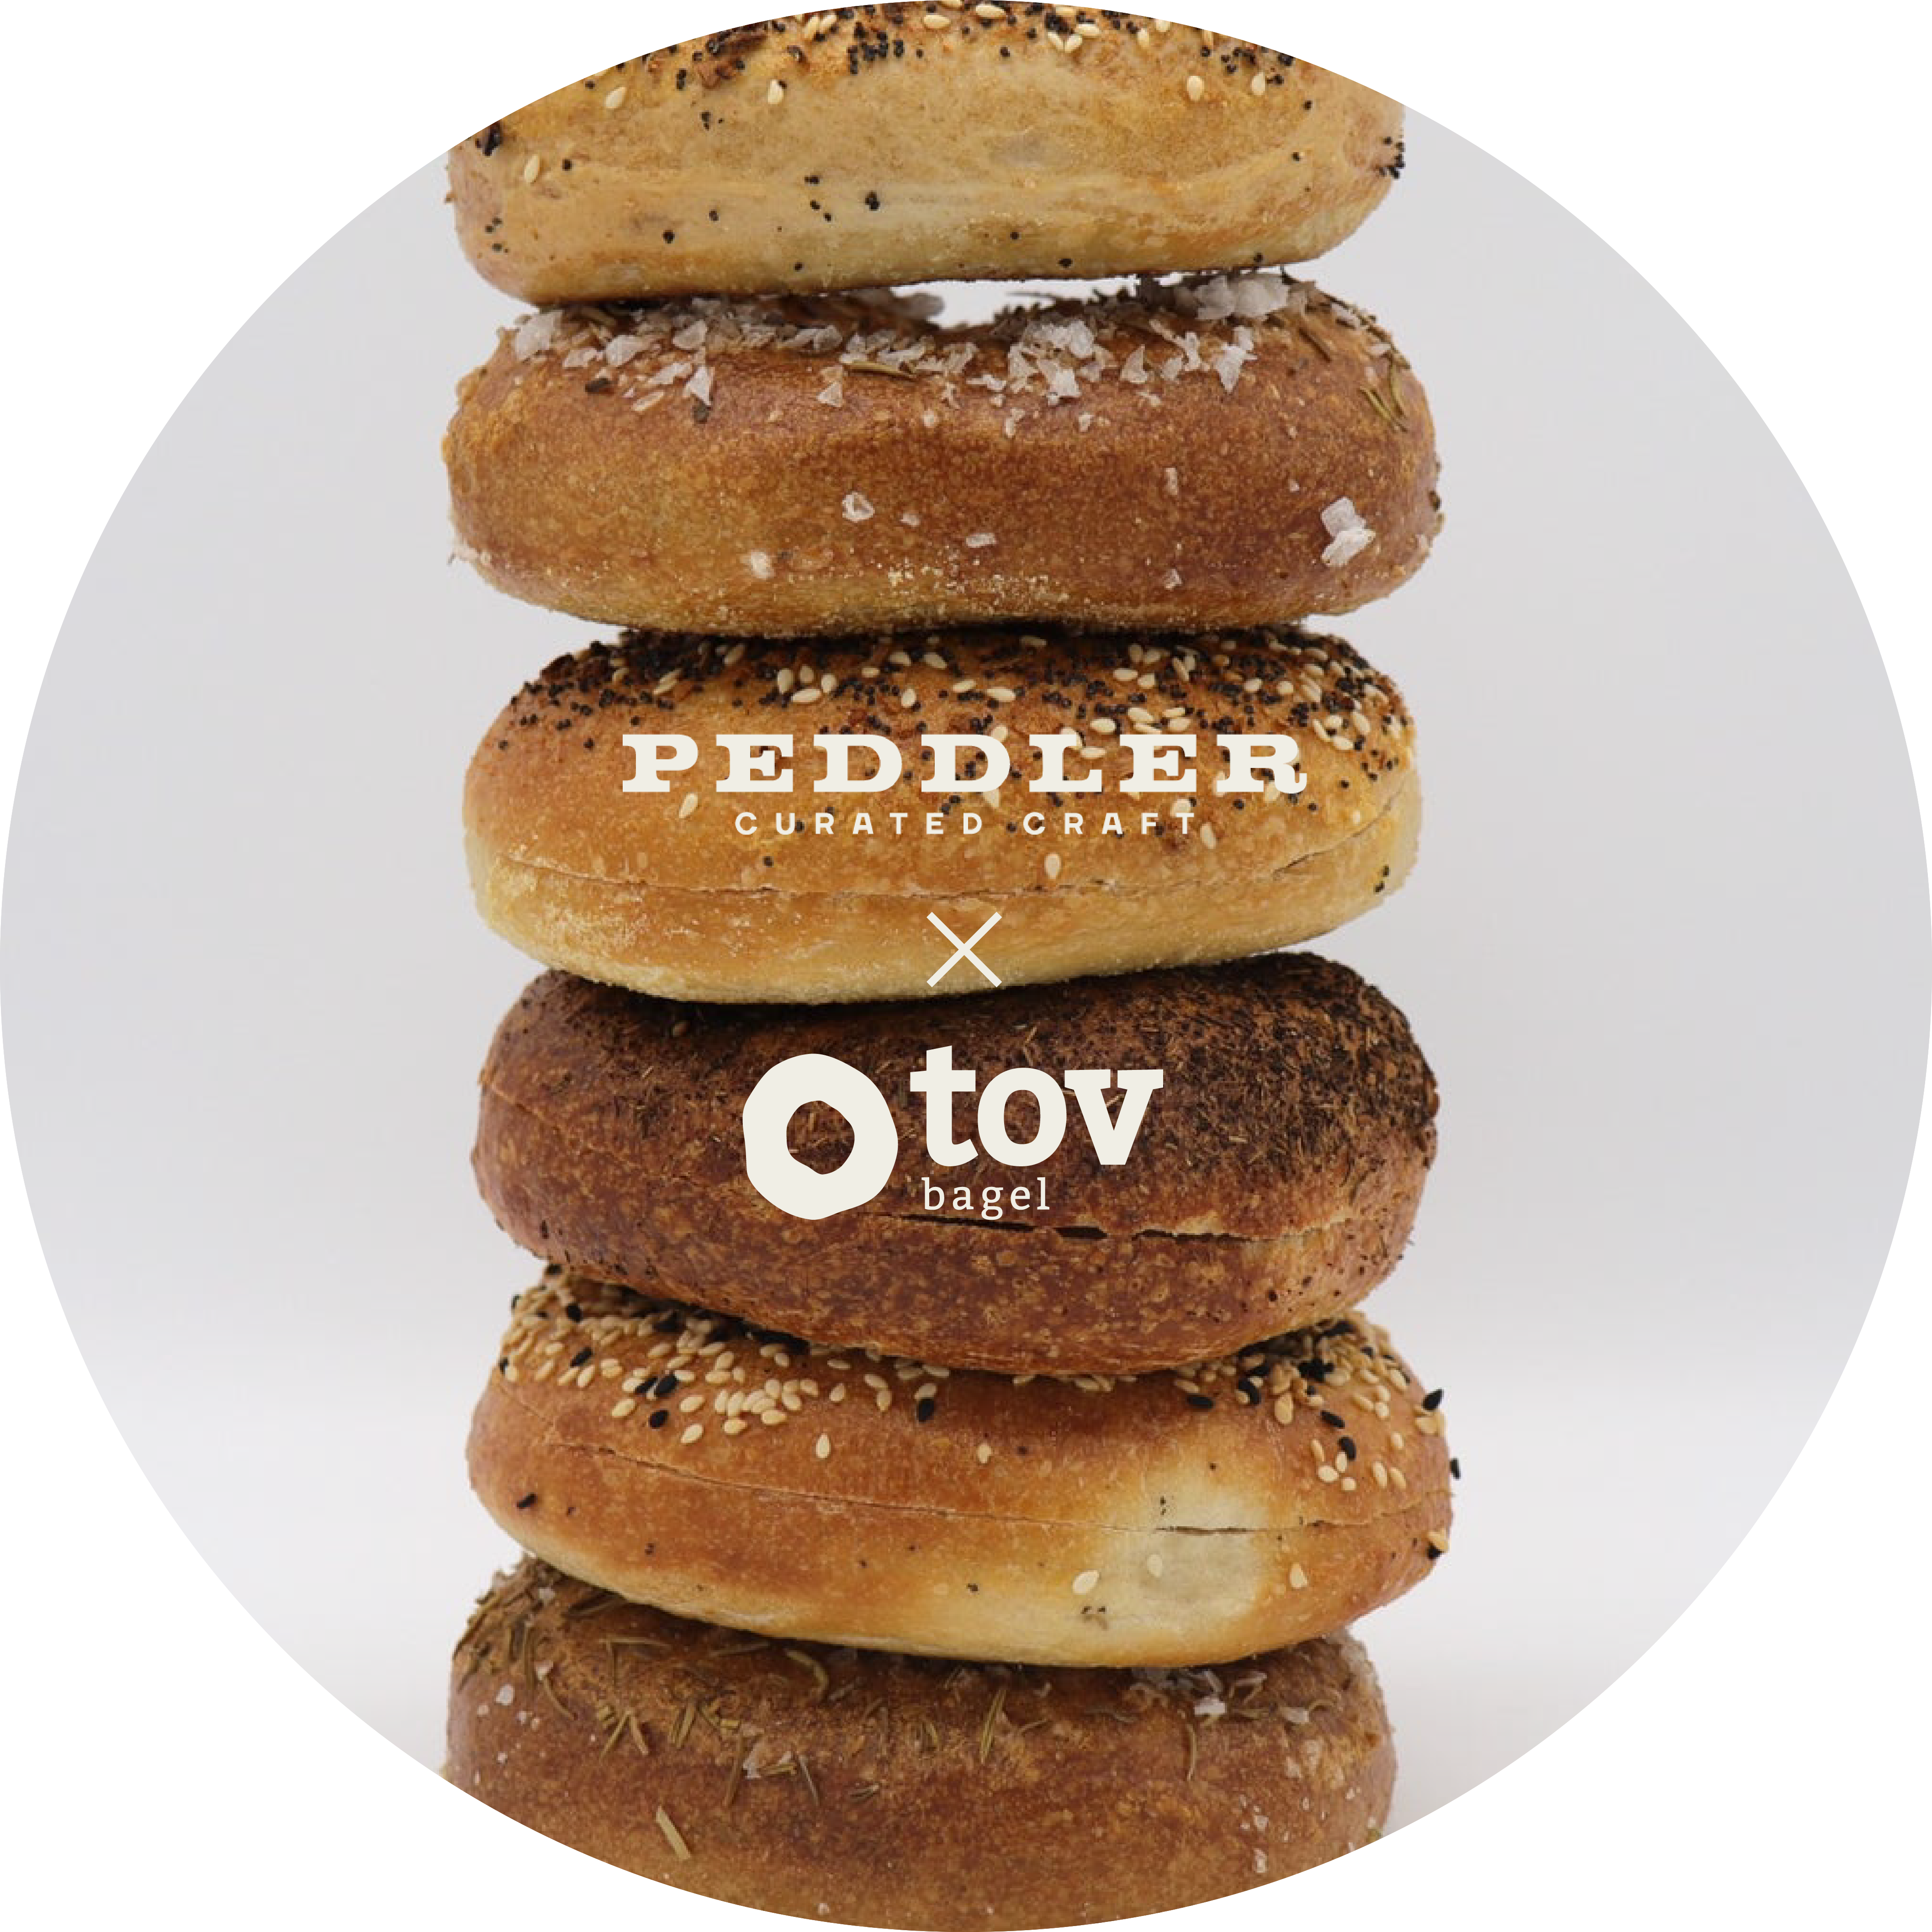 A stack of bagels with the Peddler & Tov logos